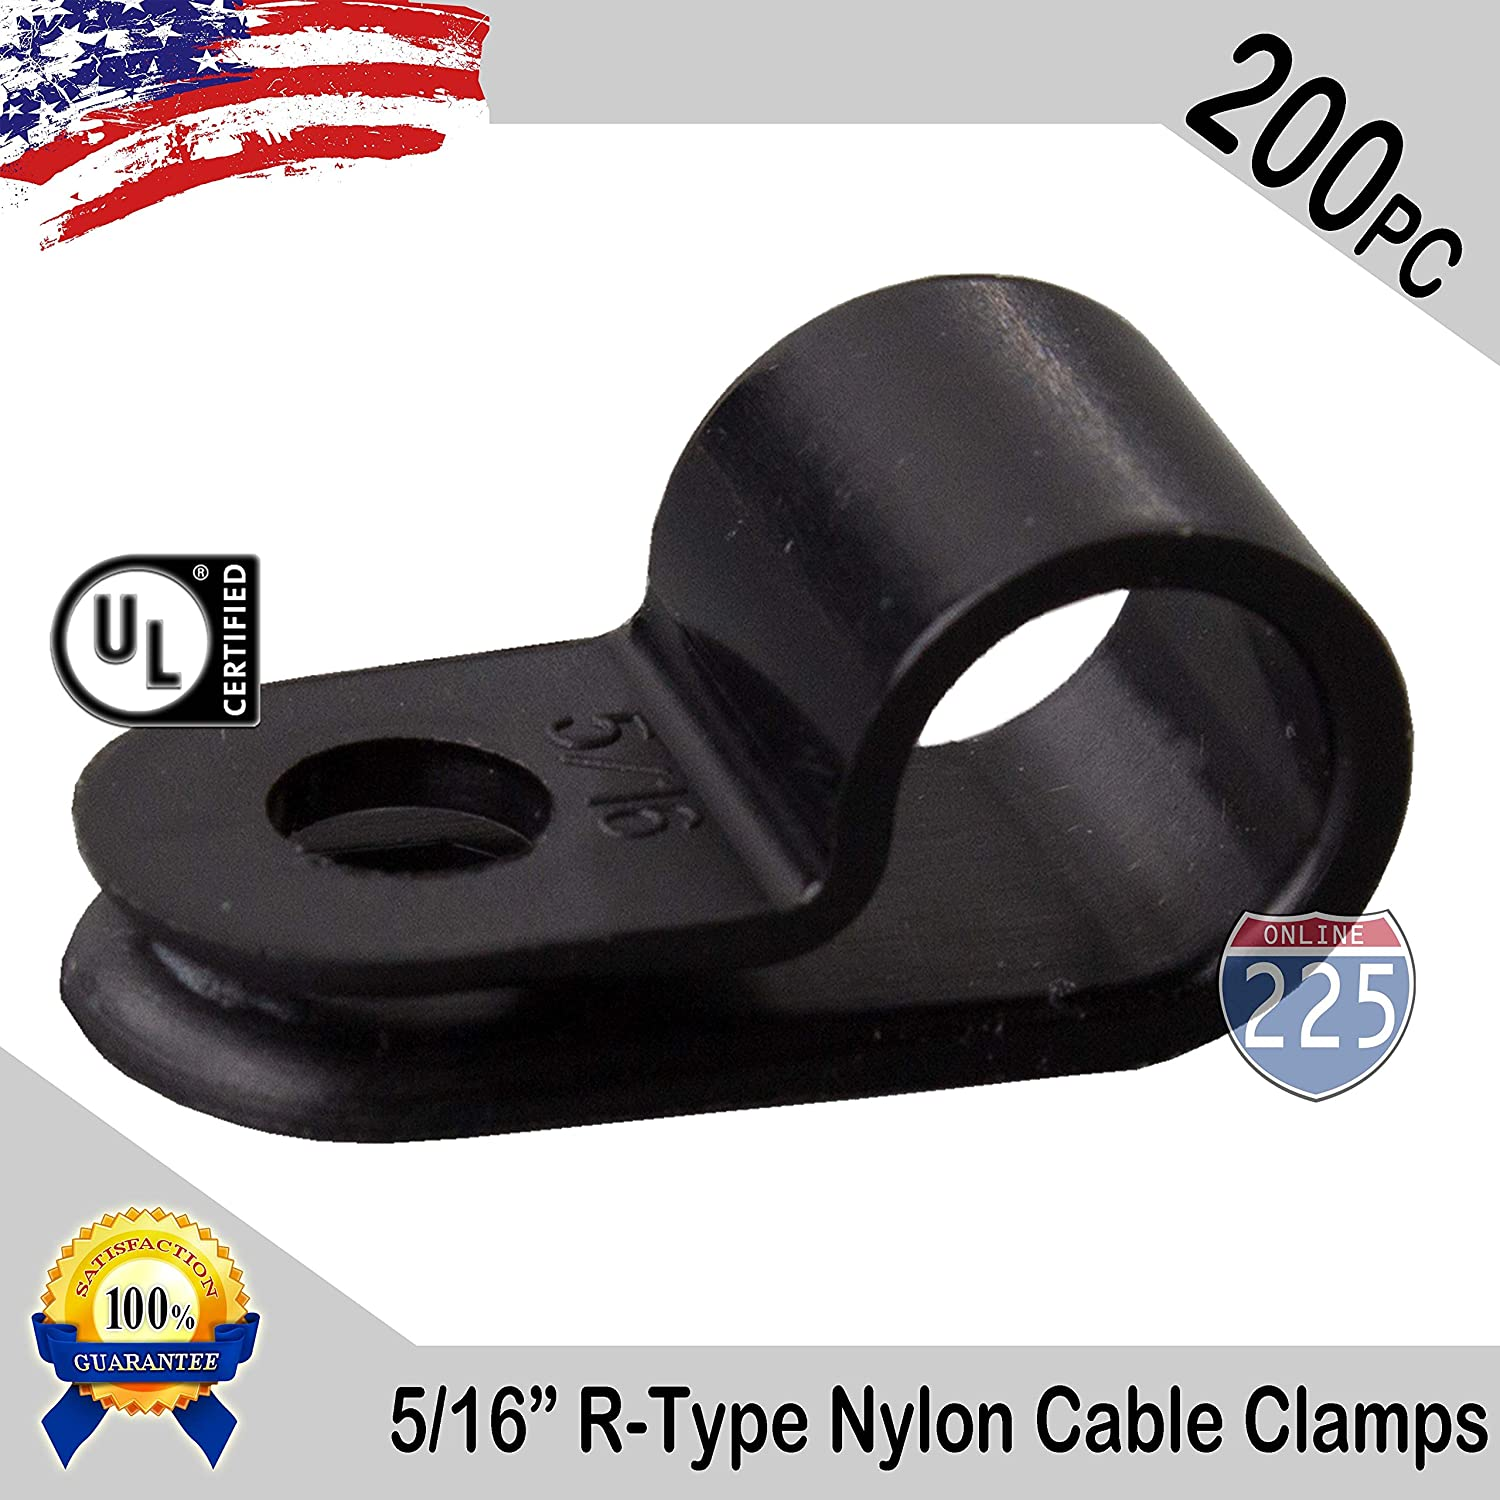 100 PIECES PACK 1//2 Inch R-Type CABLE CLAMPS NYLON BLACK HOSE WIRE ELECTRICAL UV